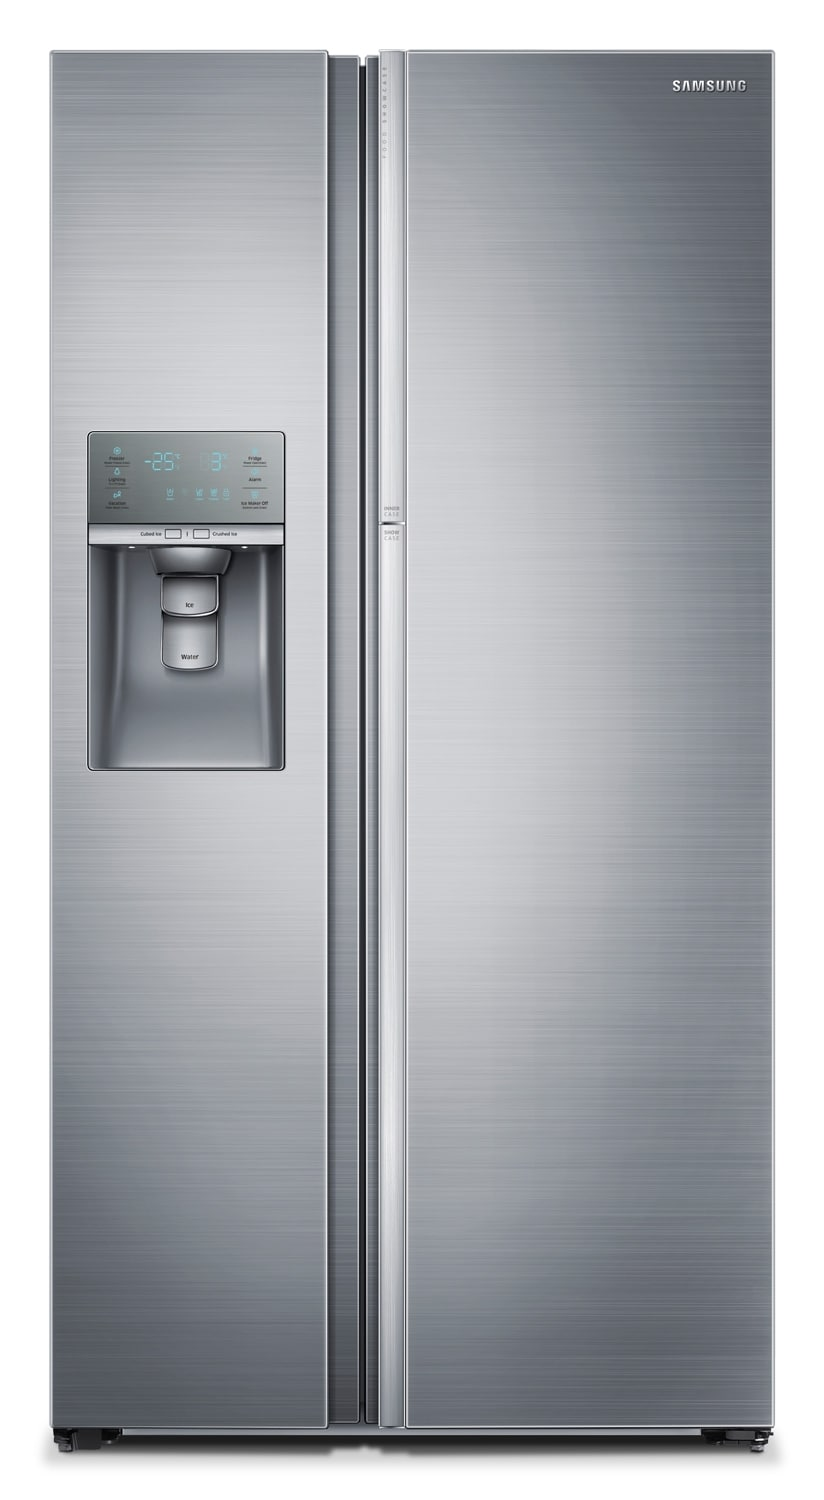 Samsung Stainless Steel Side-by-Side Refrigerator (22 Cu. Ft.) - RH22H9010SR/AA